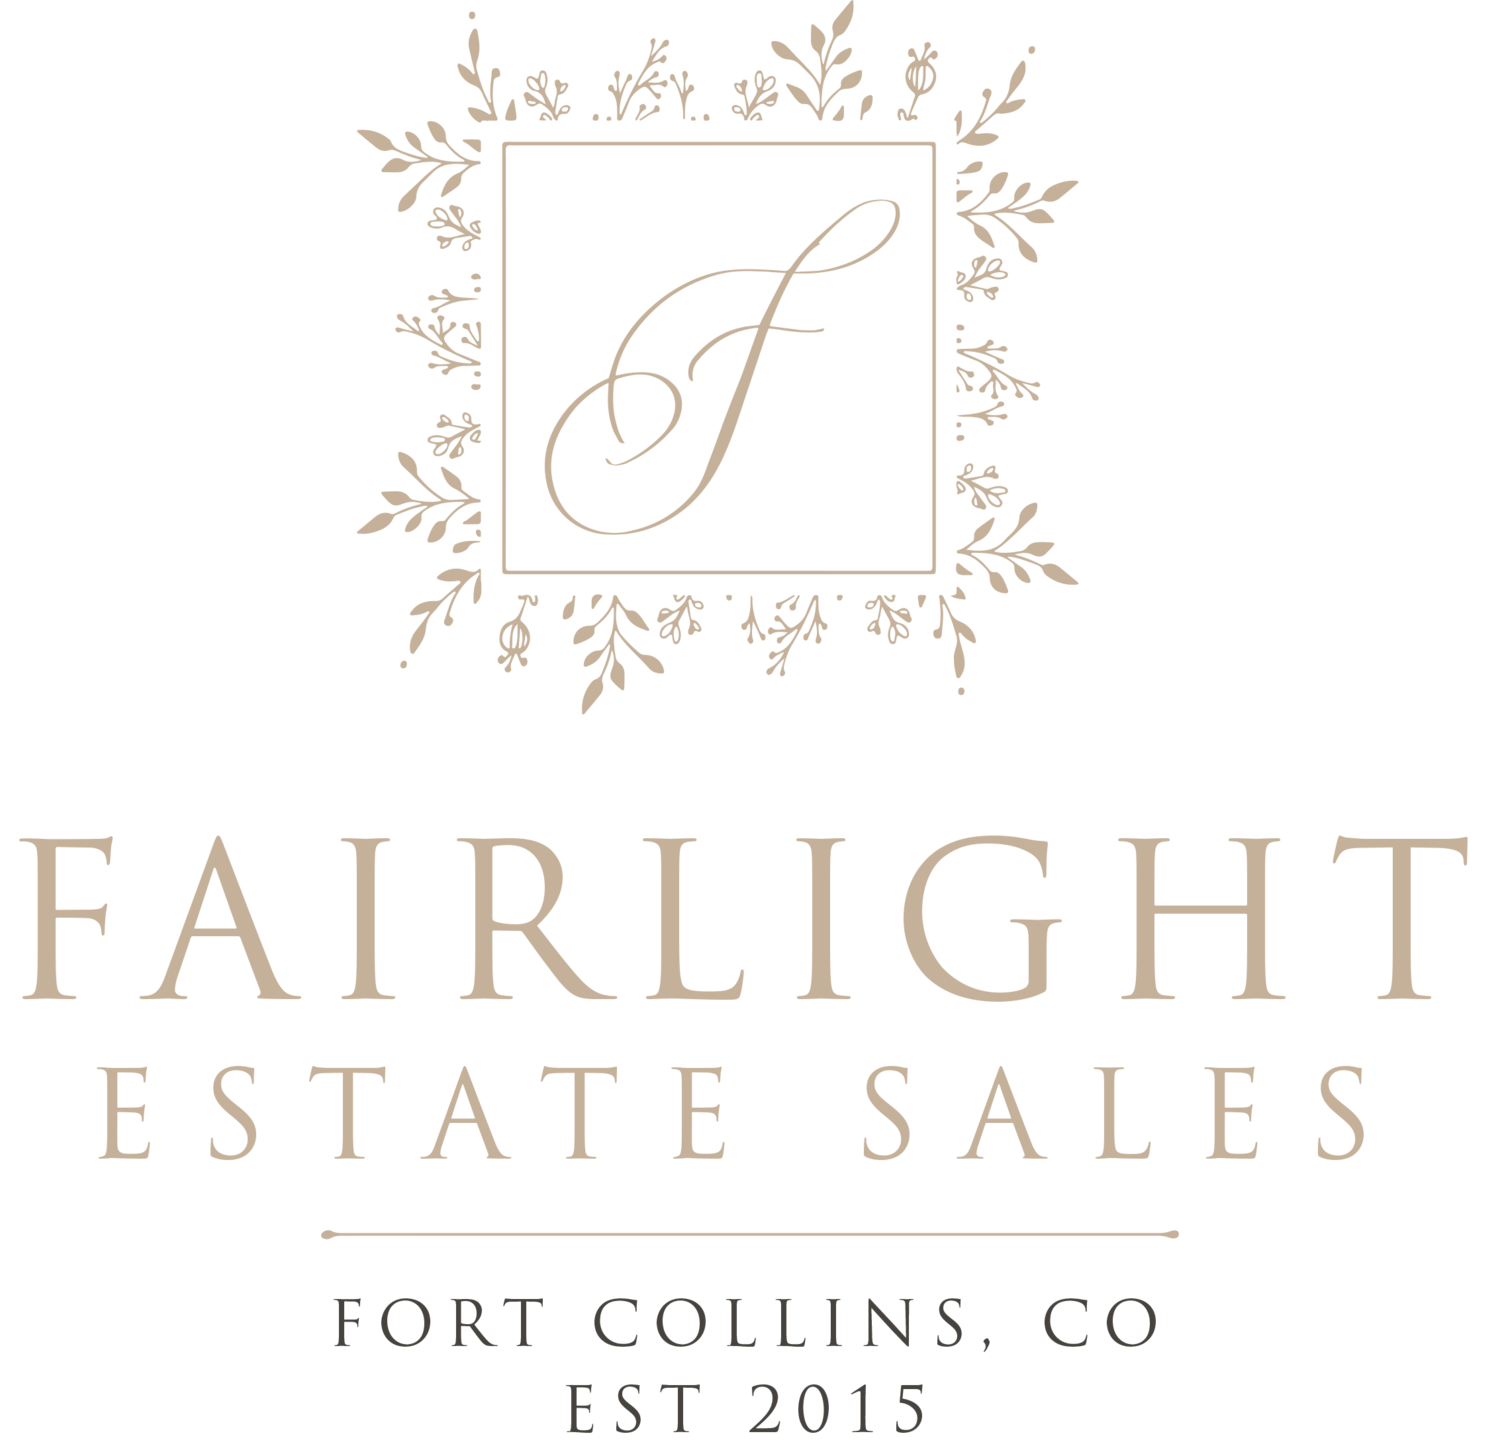 Fairlight Estate Sales